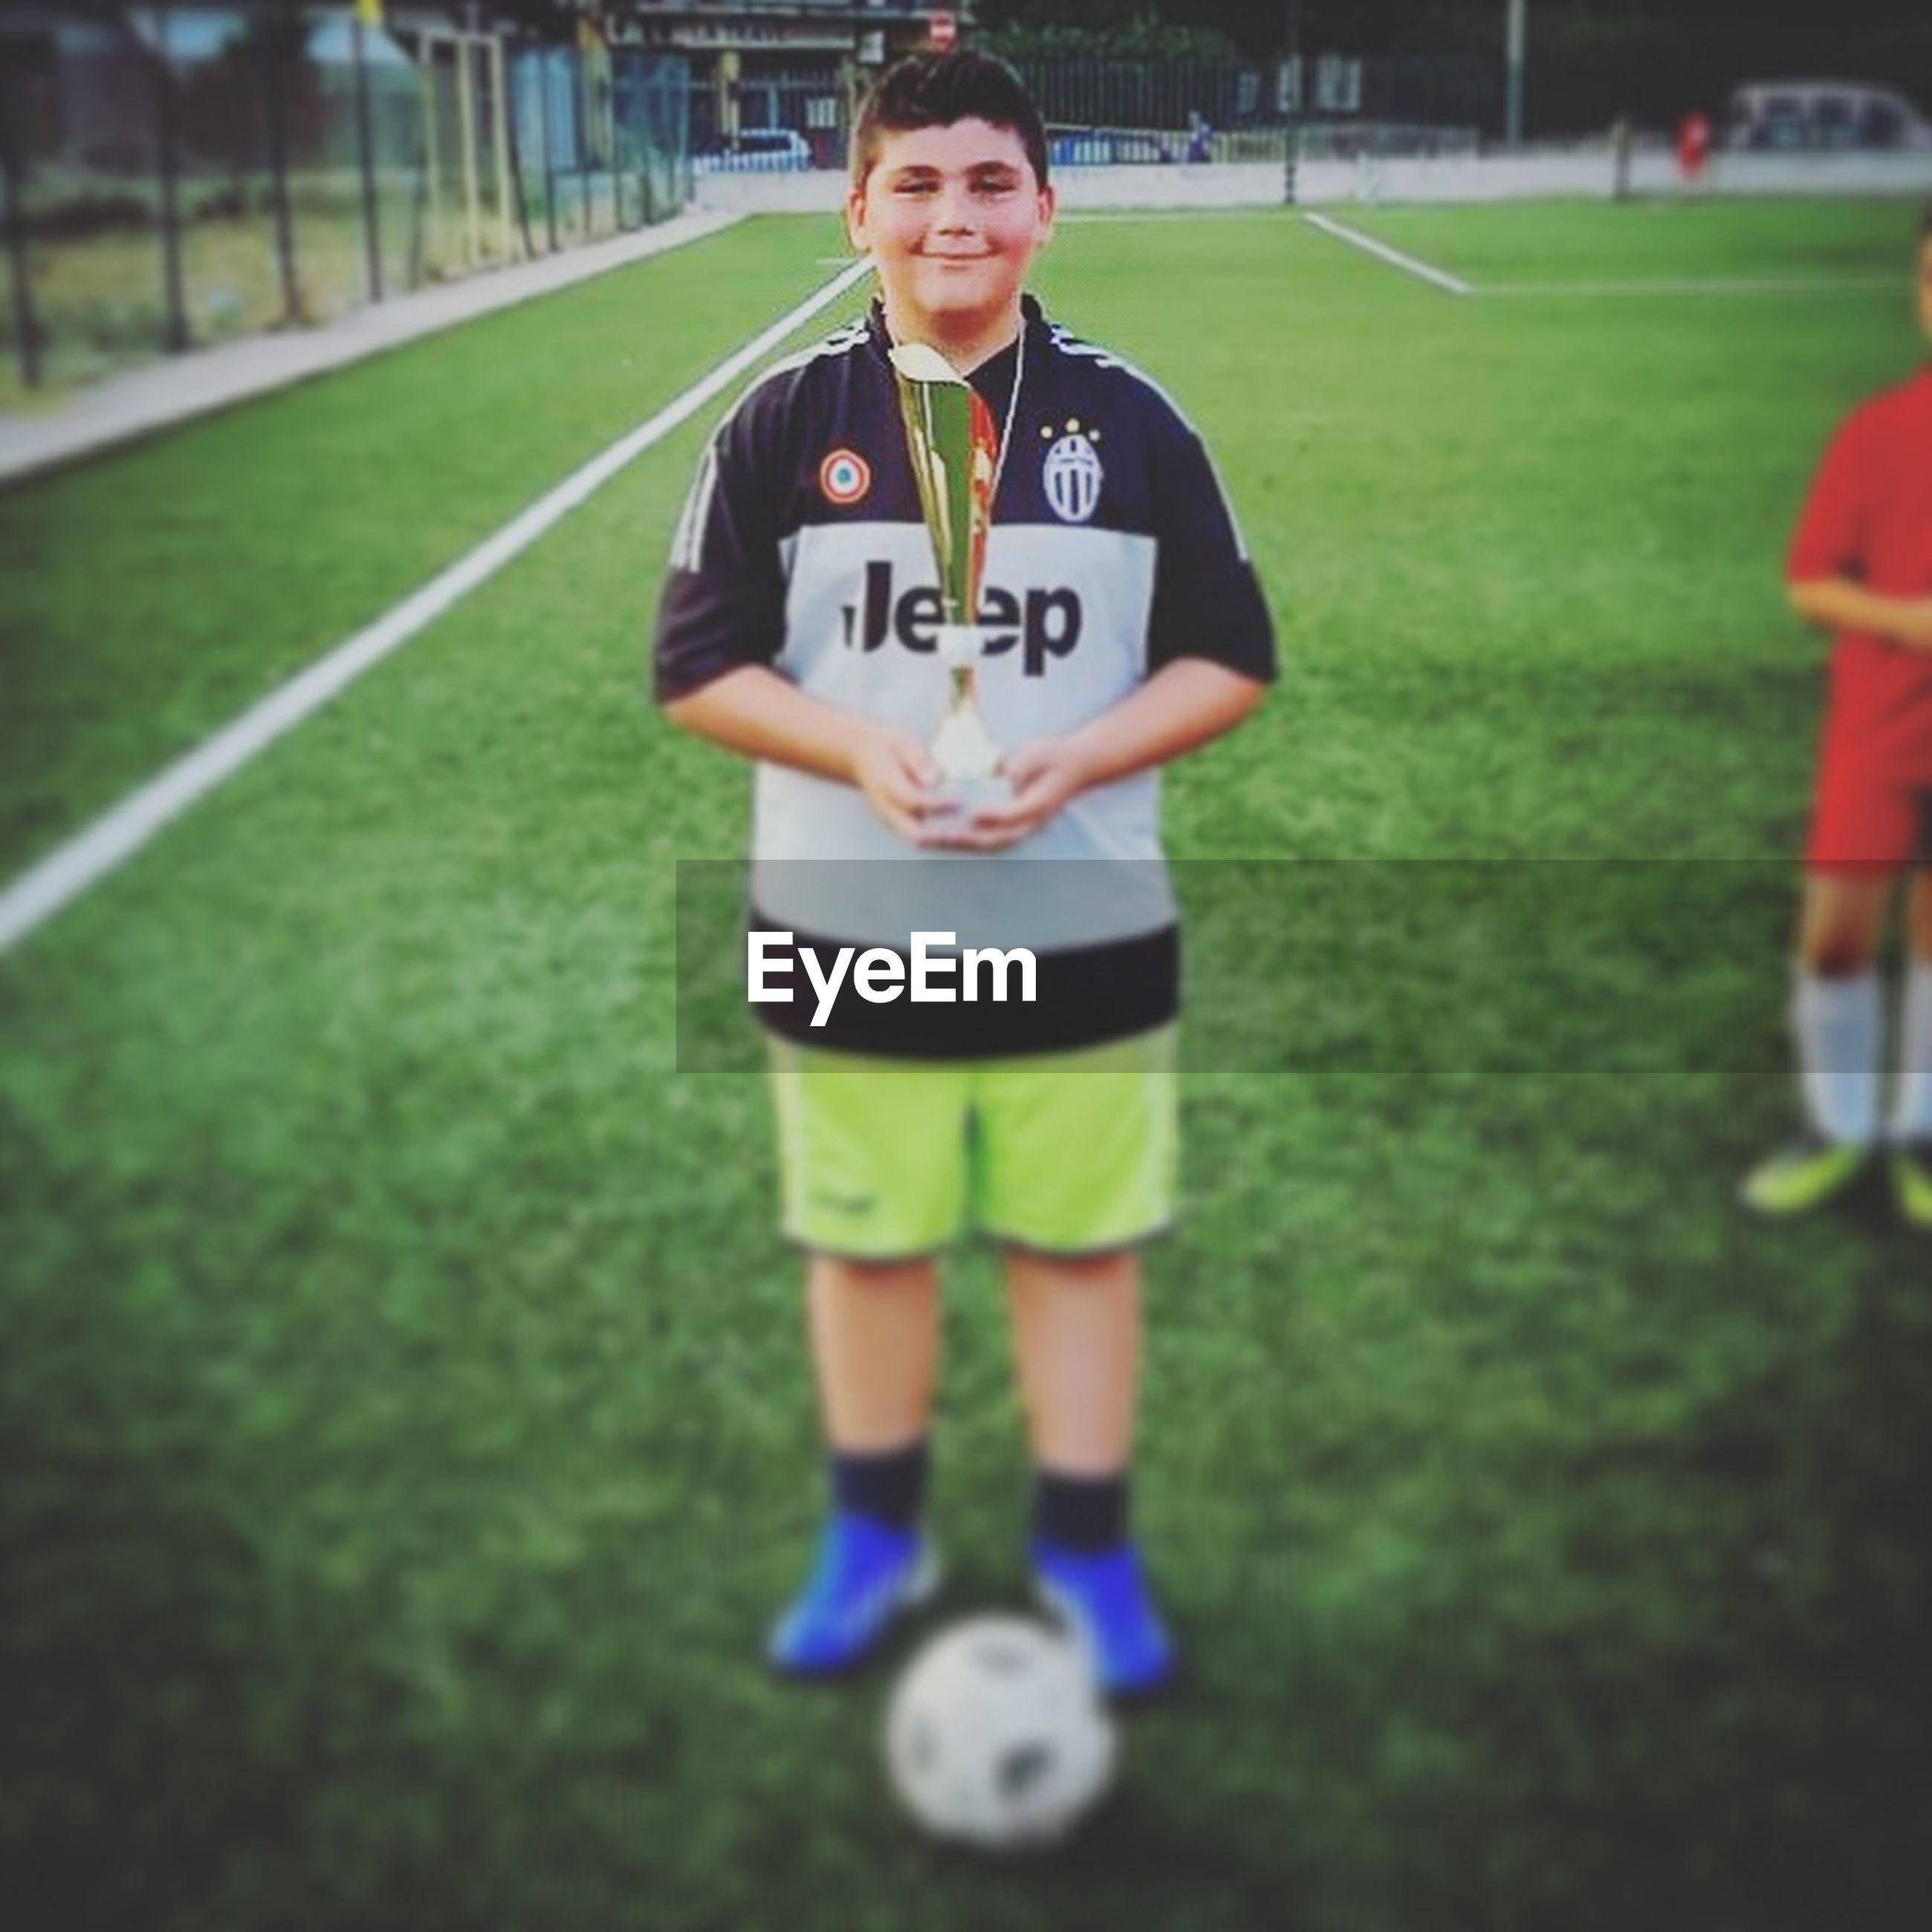 sport, number, childhood, grass, full length, sports clothing, front view, team sport, playing, competition, one person, outdoors, sports uniform, day, physical education, soccer, competitive sport, soccer field, playing field, sports team, real people, soccer uniform, people